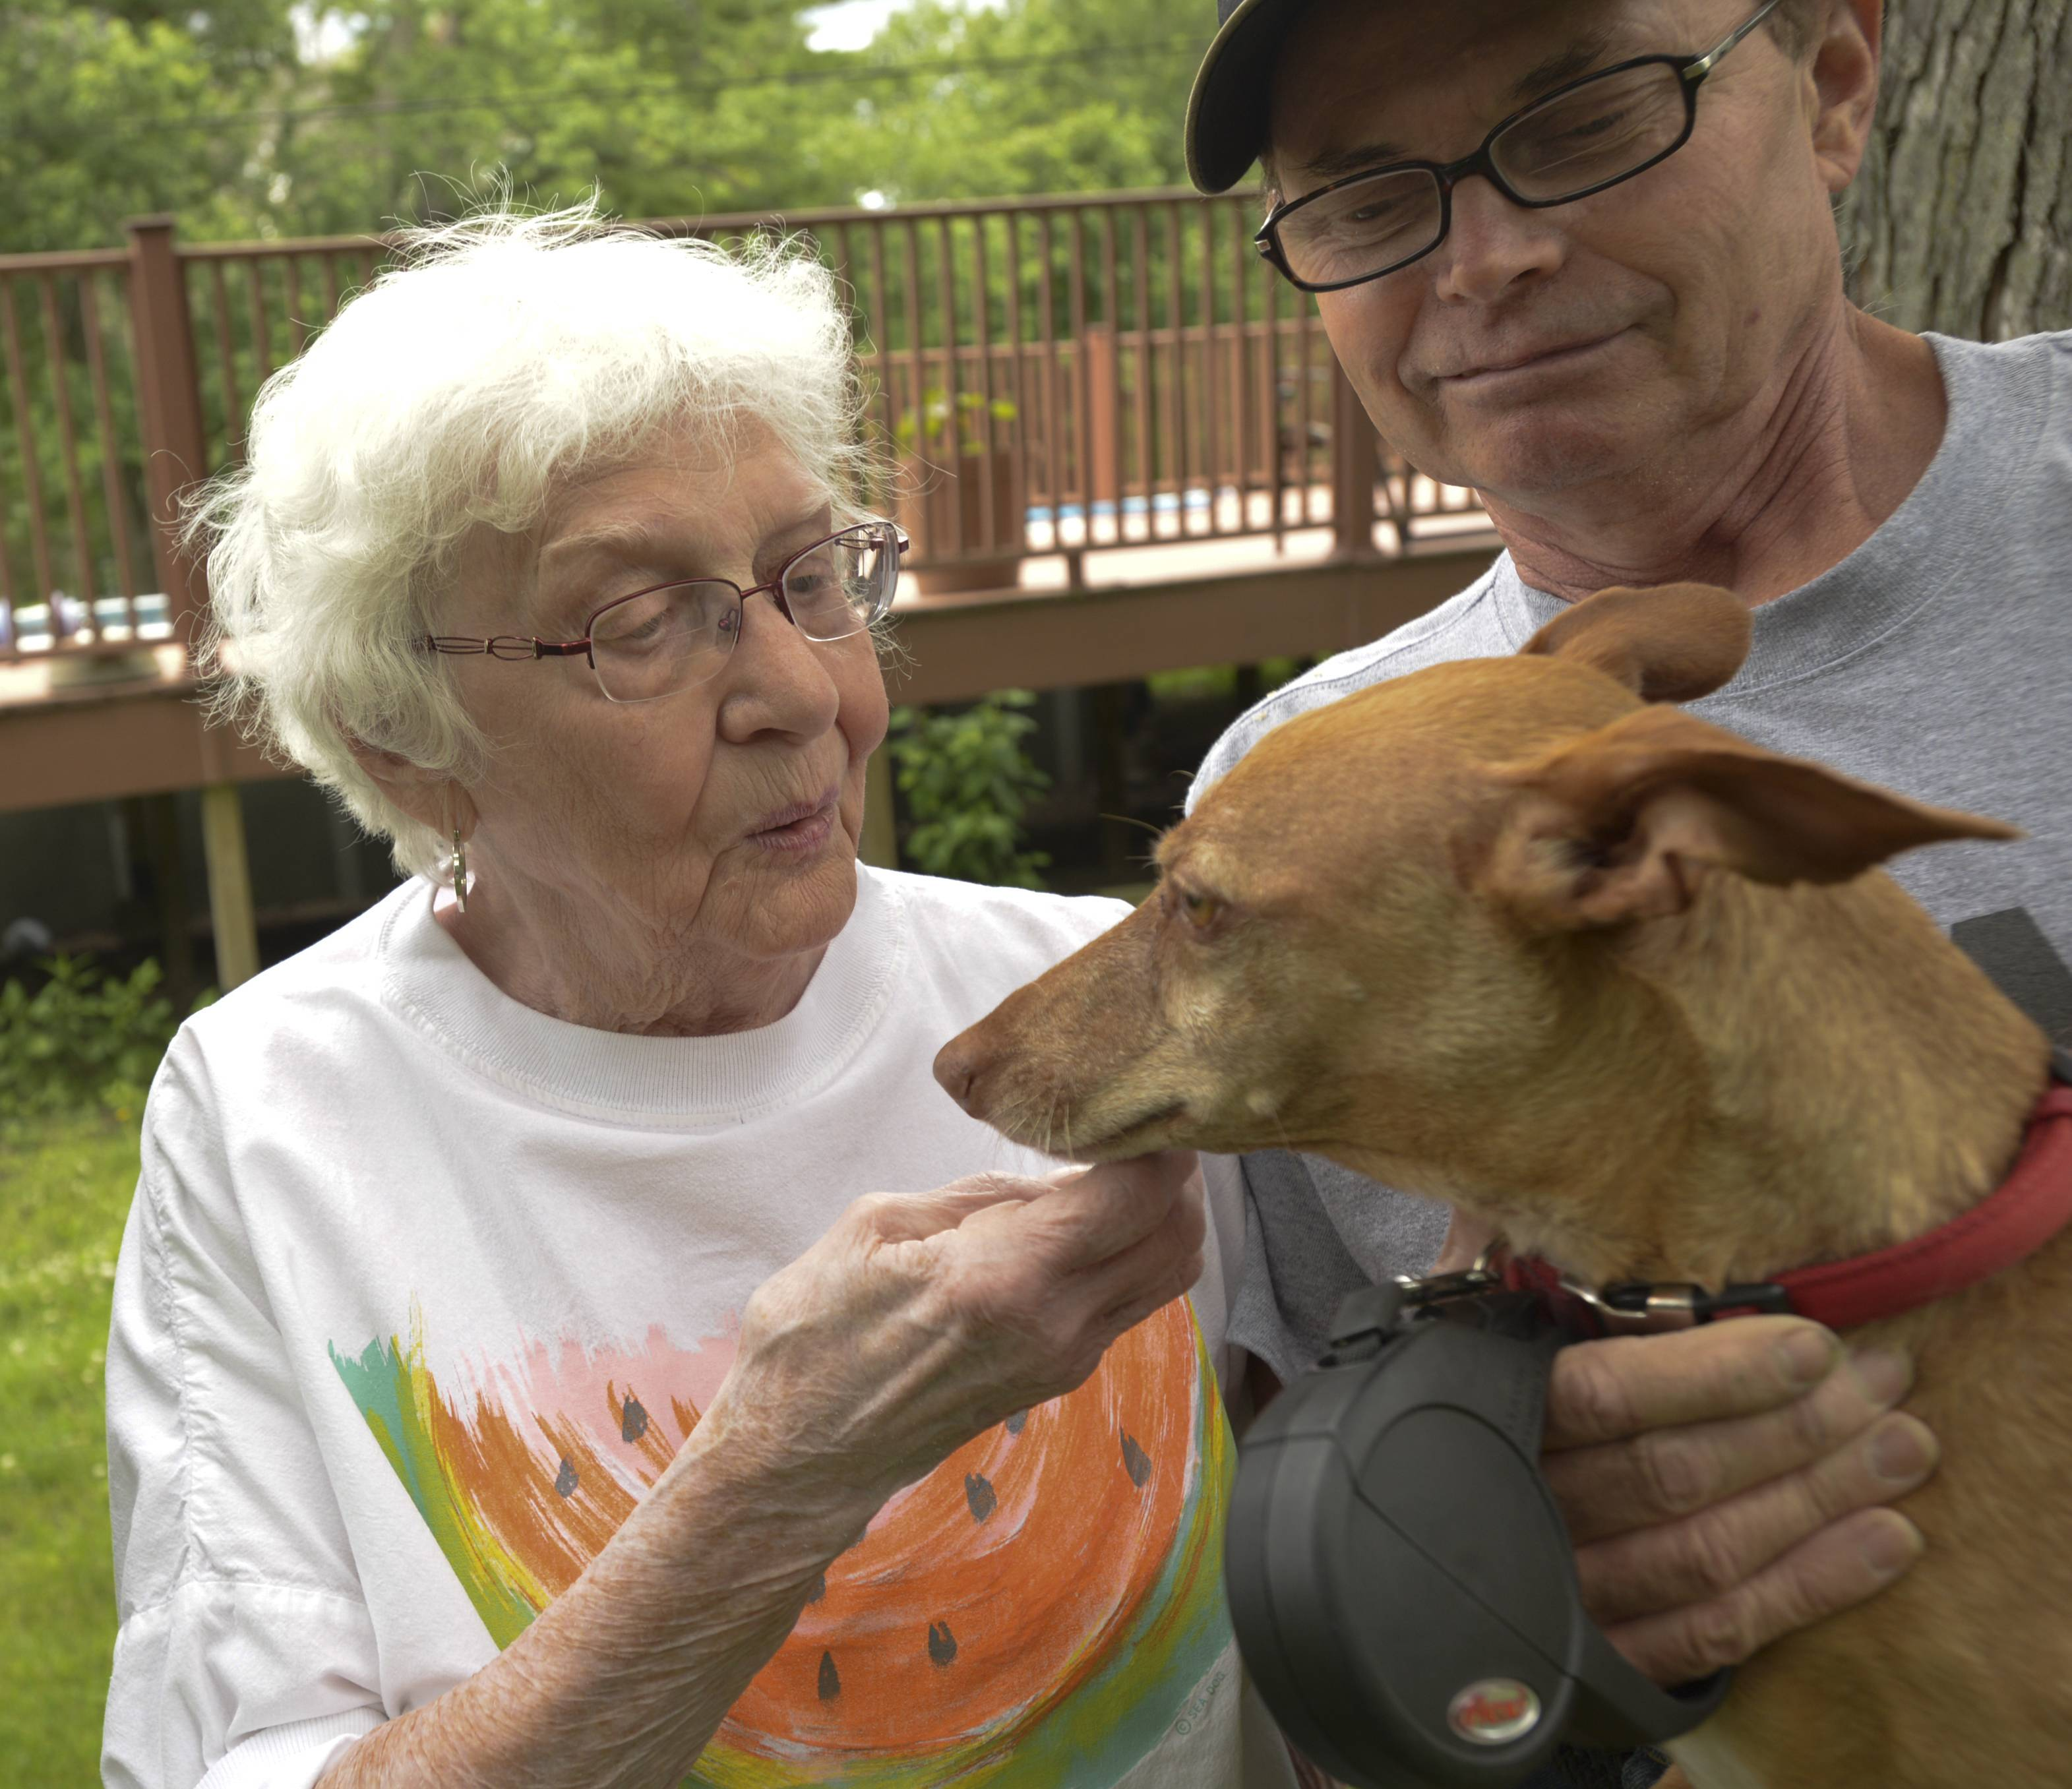 Dolly Jefferson greets Roxie, held by her owner Rich Parent. The 11-year-old dog has injuries to her face after she was attacked by coyotes and was saved from certain death by 84-year-old Jackson.